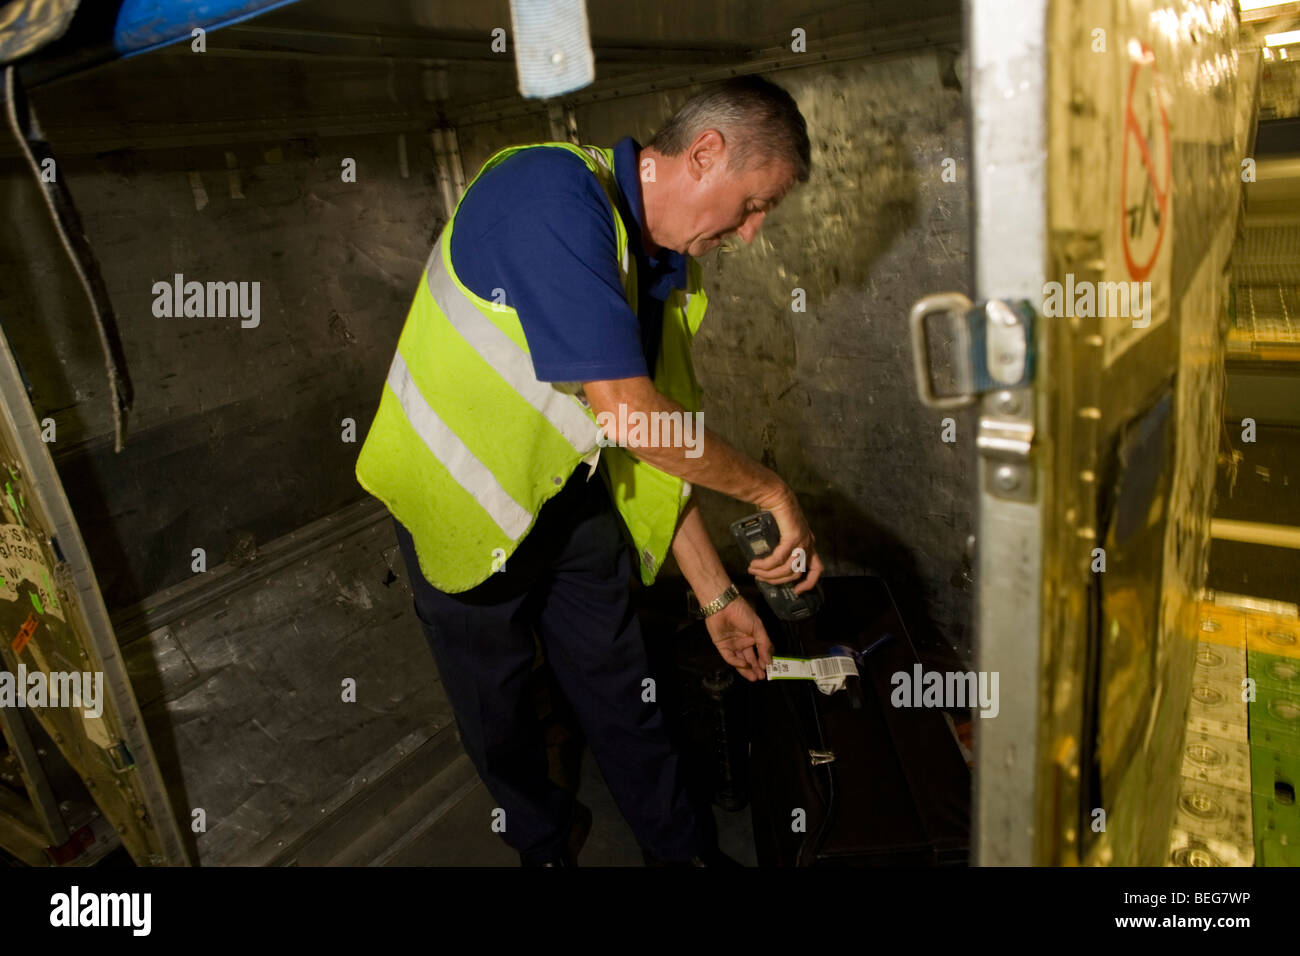 A British Airways baggage handler scans the bar code of his airline passenger's item of luggage before loading - Stock Image